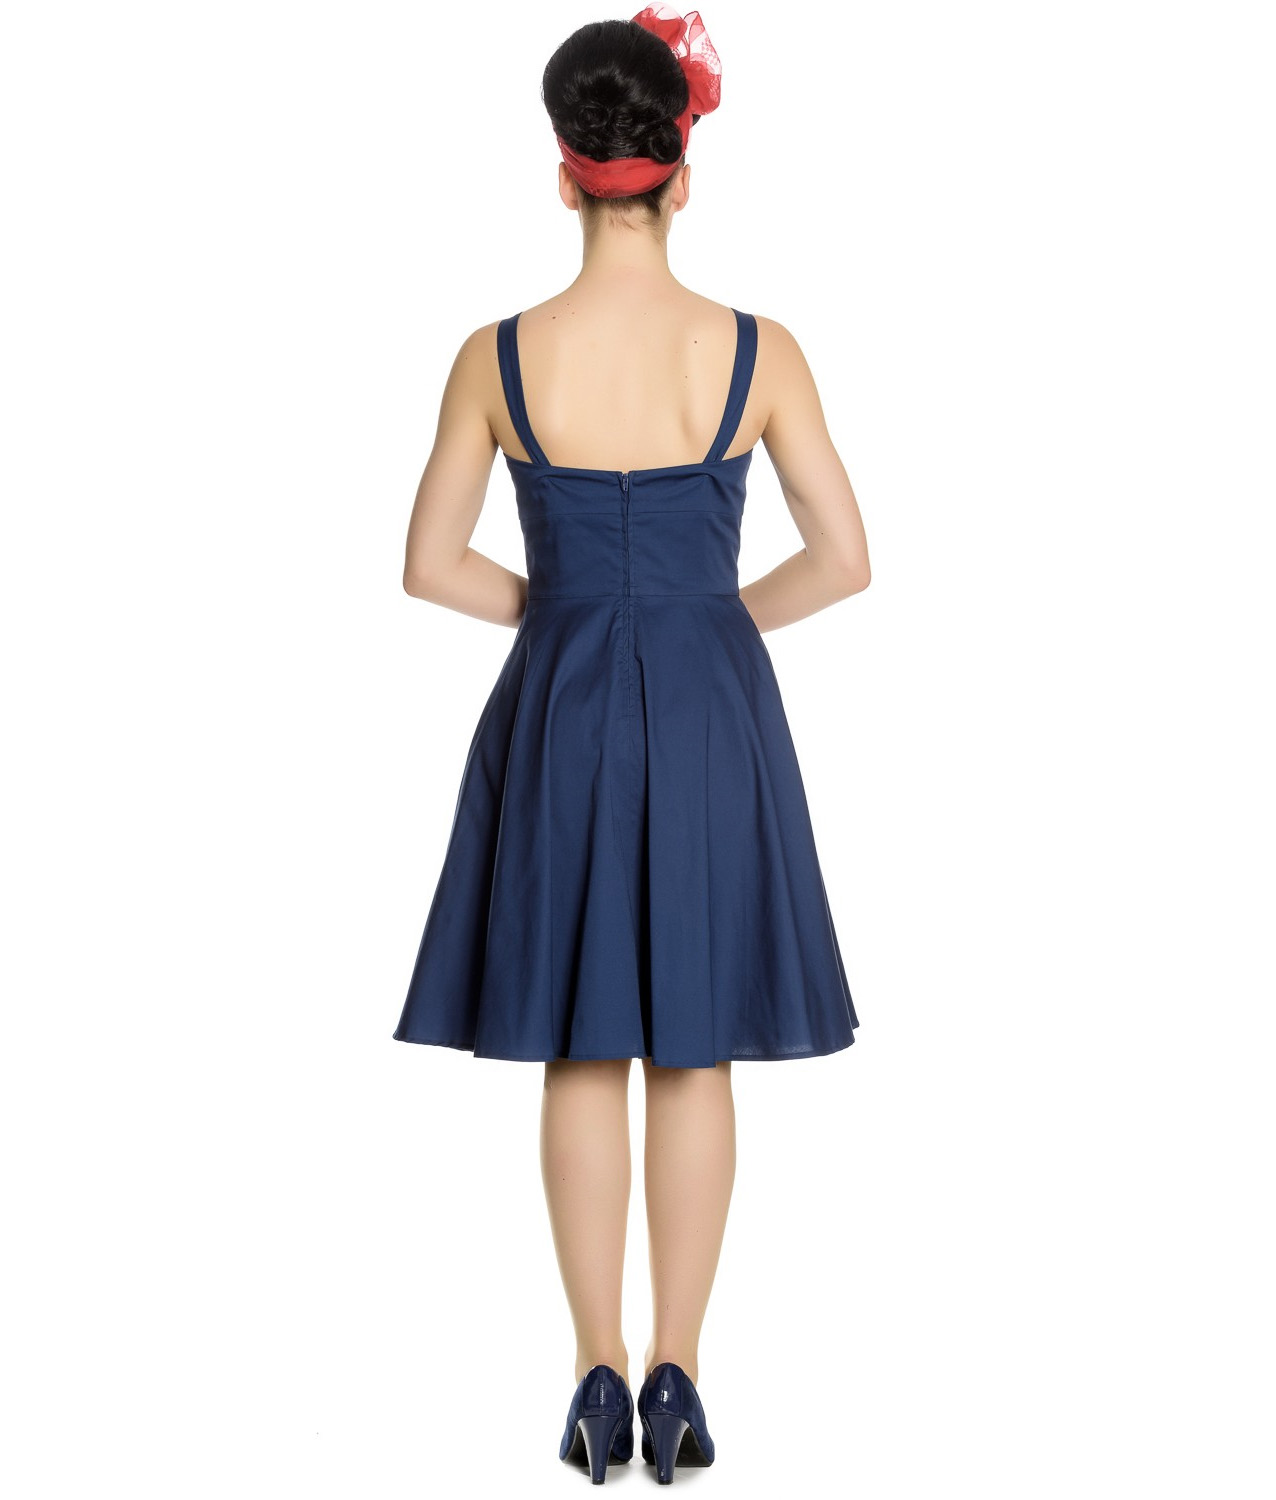 Hell-Bunny-Vintage-50s-Pin-Up-Dress-Navy-Blue-SELA-Nautical-Anchors-All-Sizes thumbnail 29